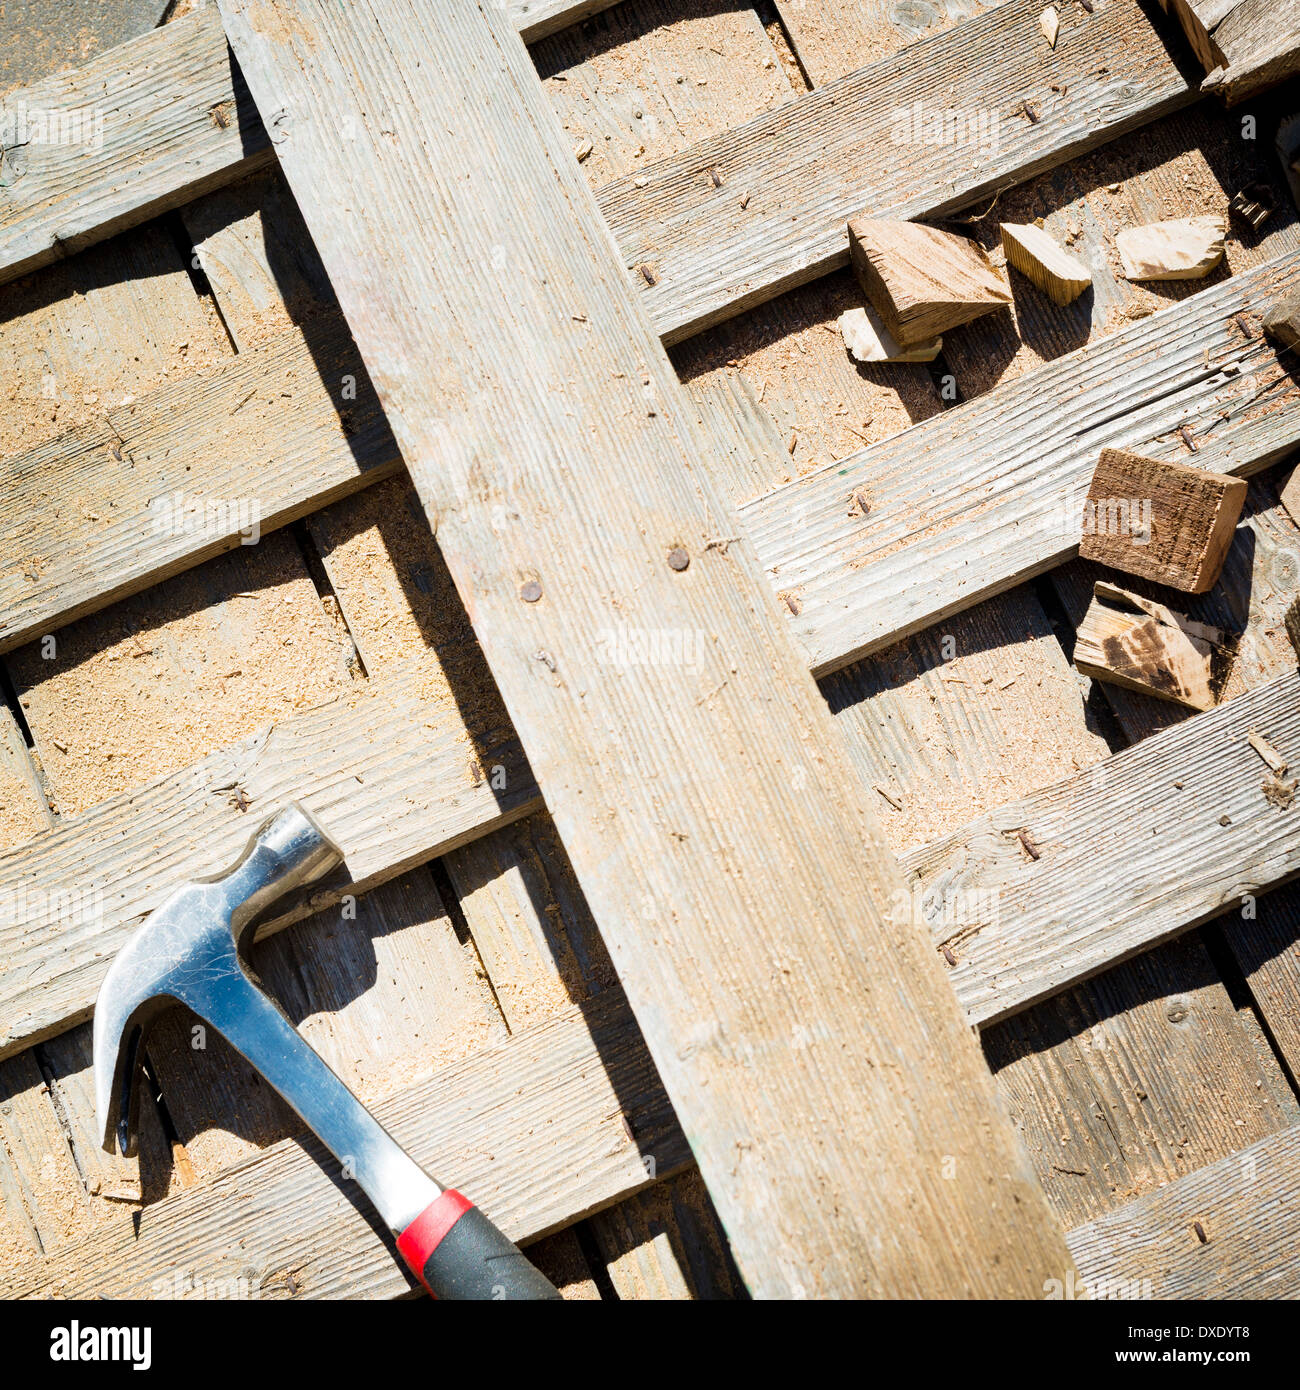 Old Wooden Workbench Tools Stock Photos & Old Wooden Workbench Tools ...